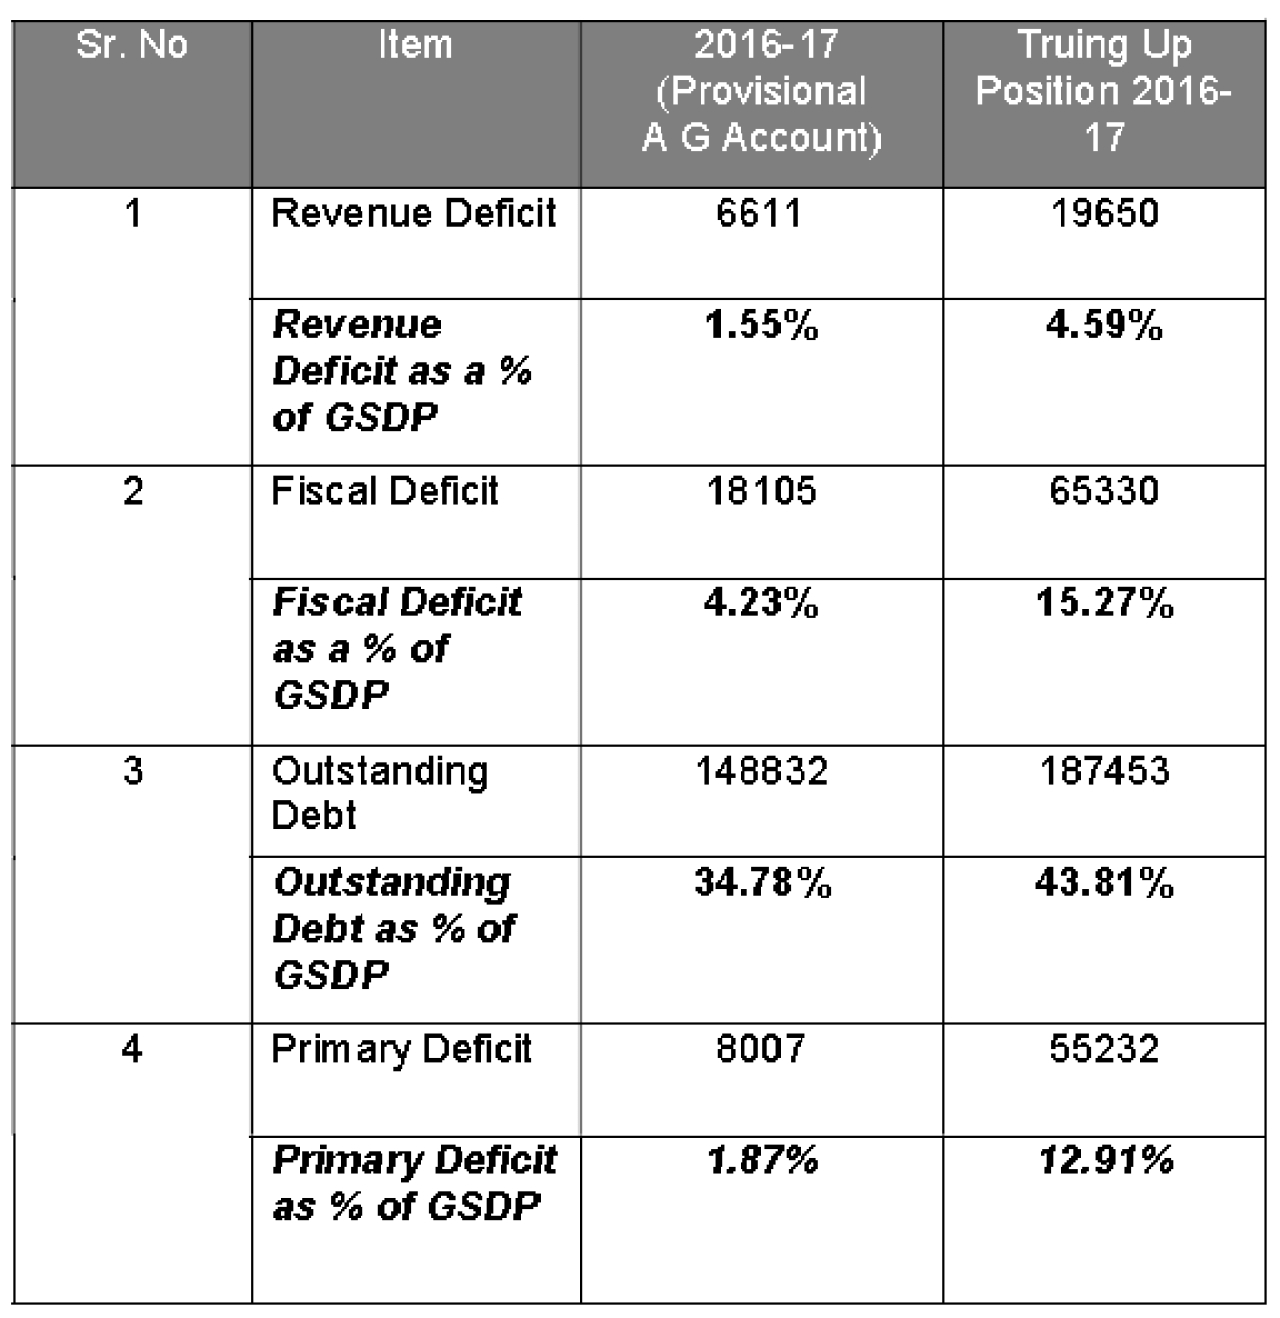 True financial position -2016-17 (in Rs crore)